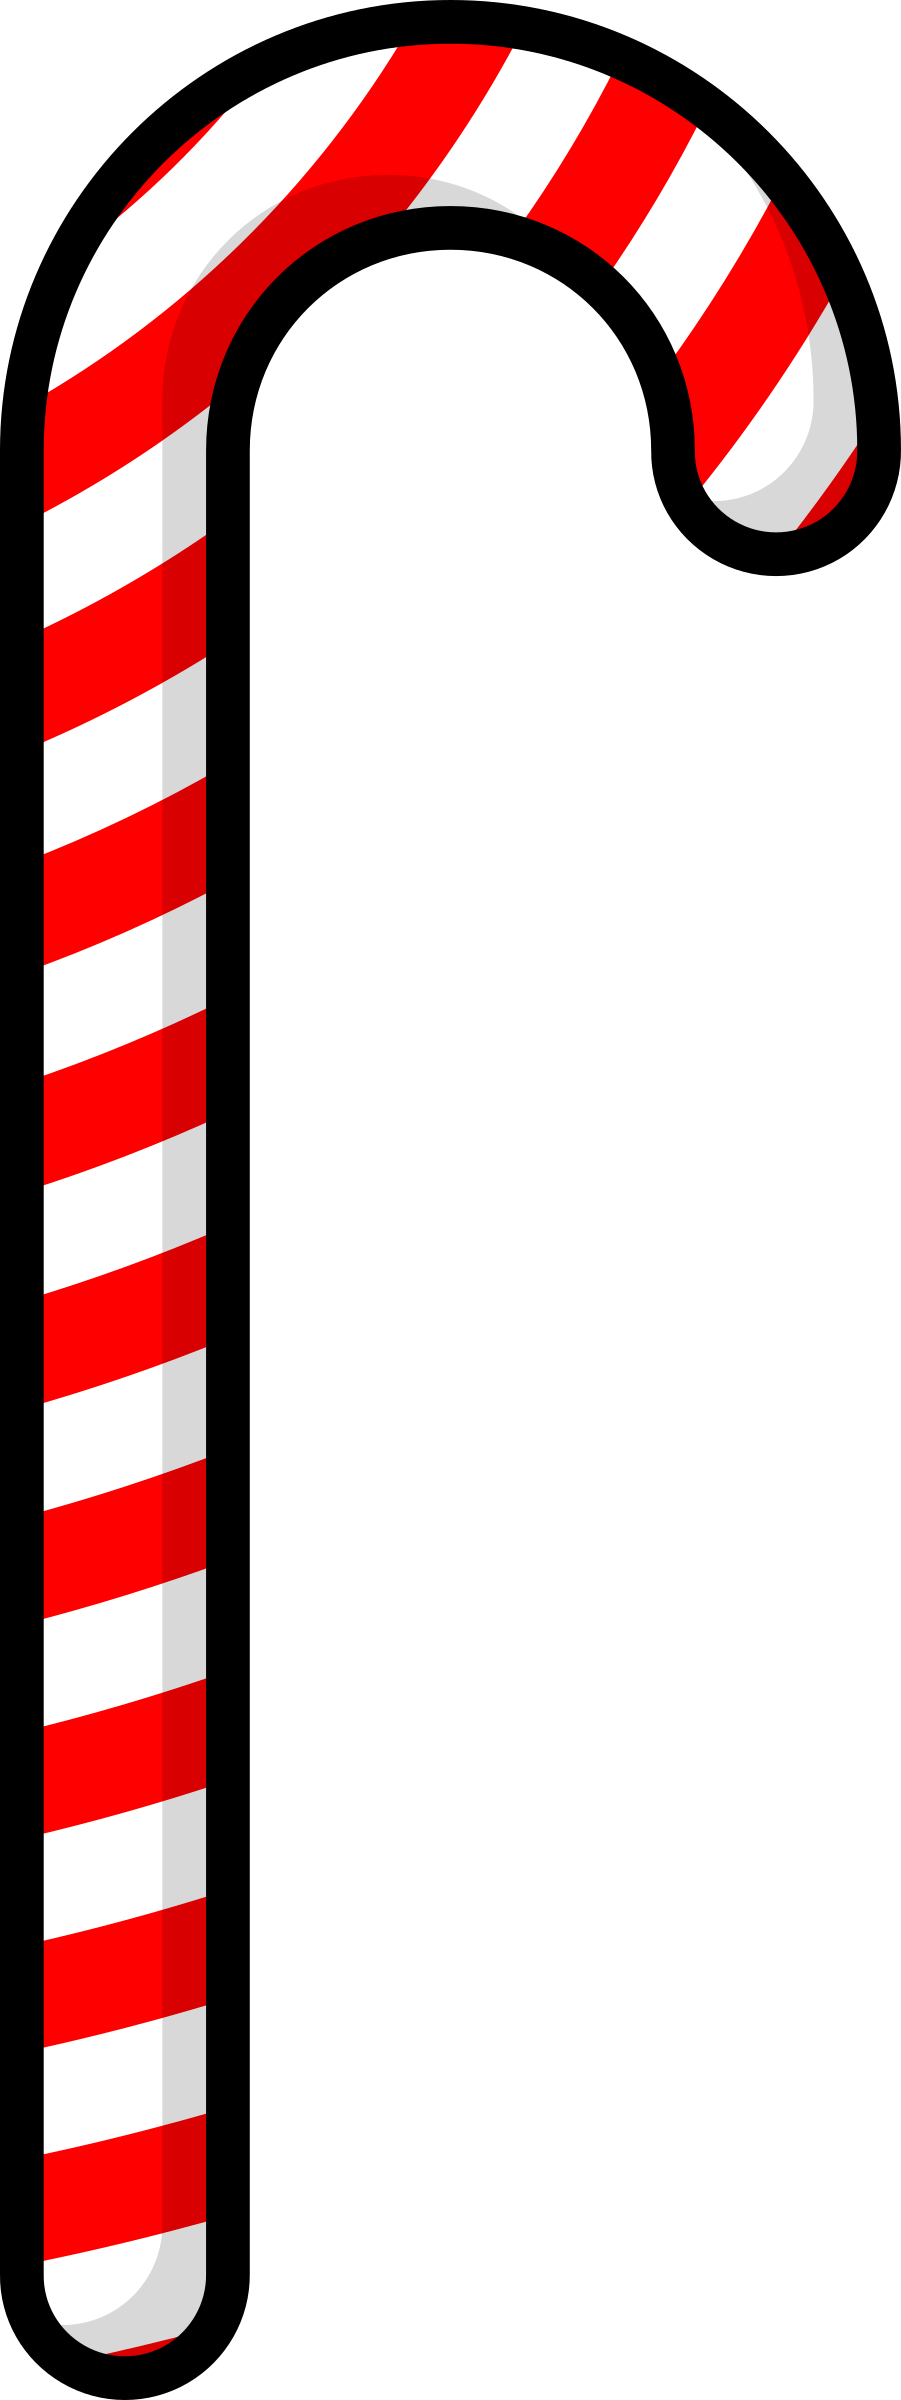 Picture Of Candy Cane   Free download on ClipArtMag